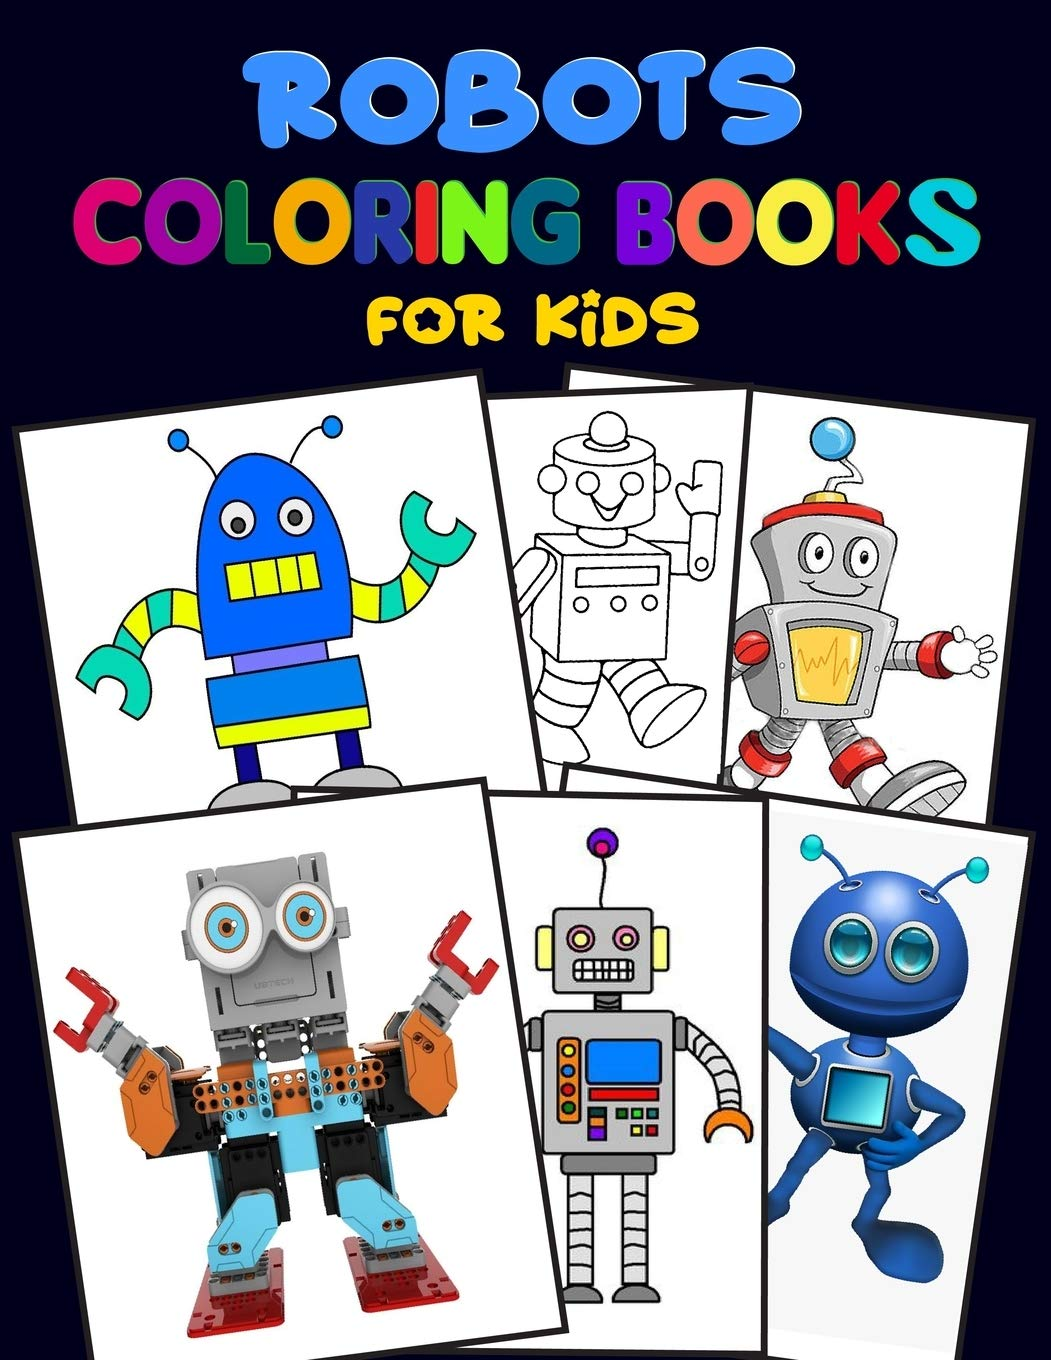 - Robots Coloring Books For Kids.: Robot Coloring Books For Kids